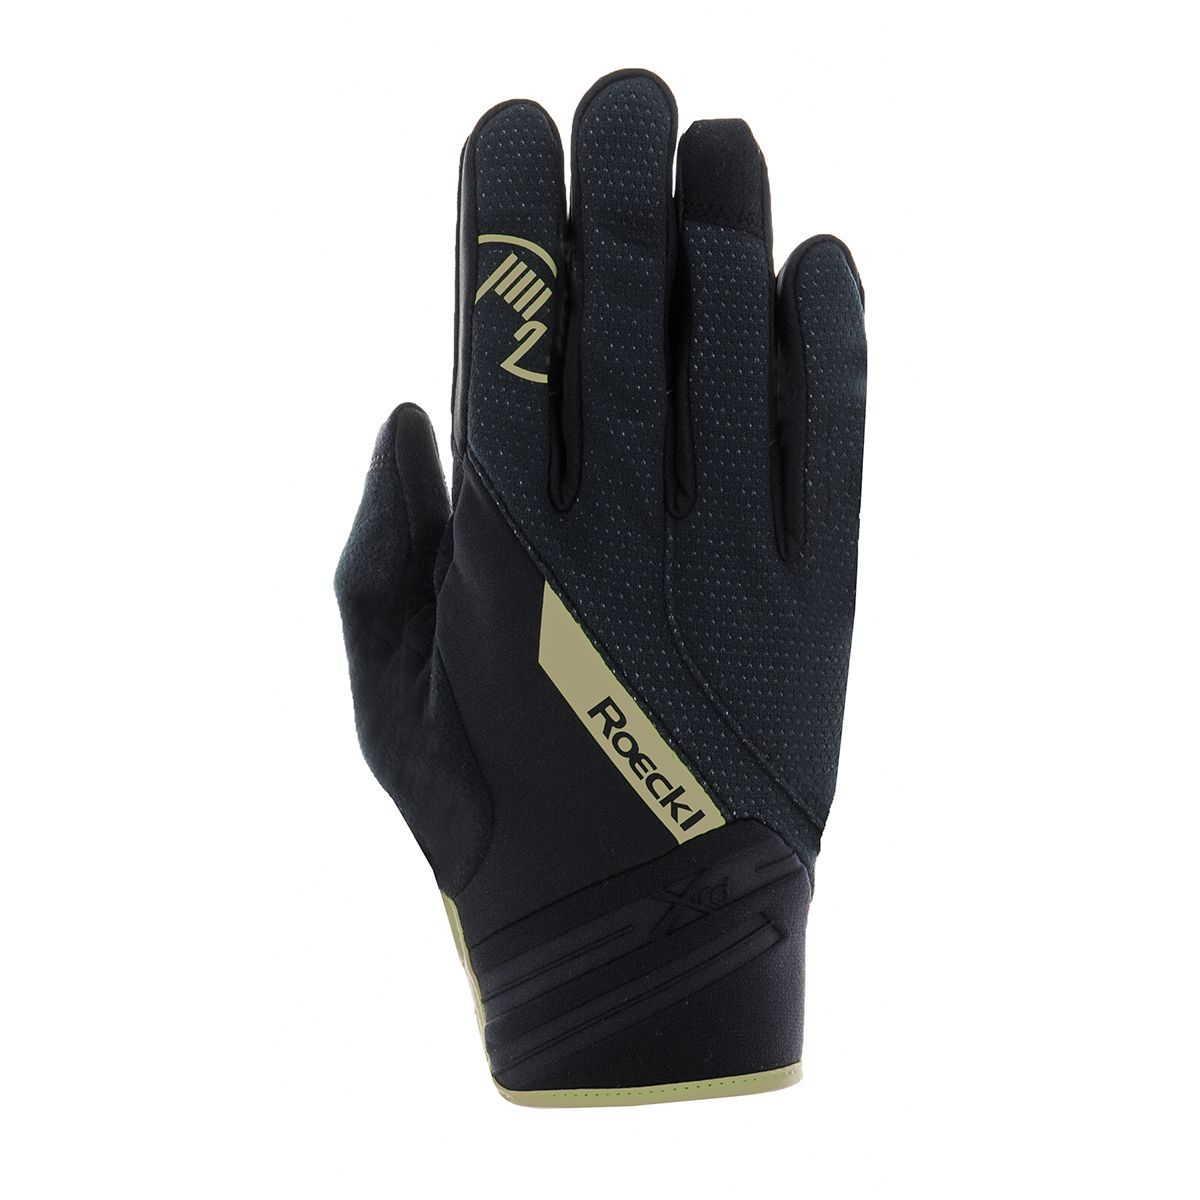 RENON Winter Cycling Gloves